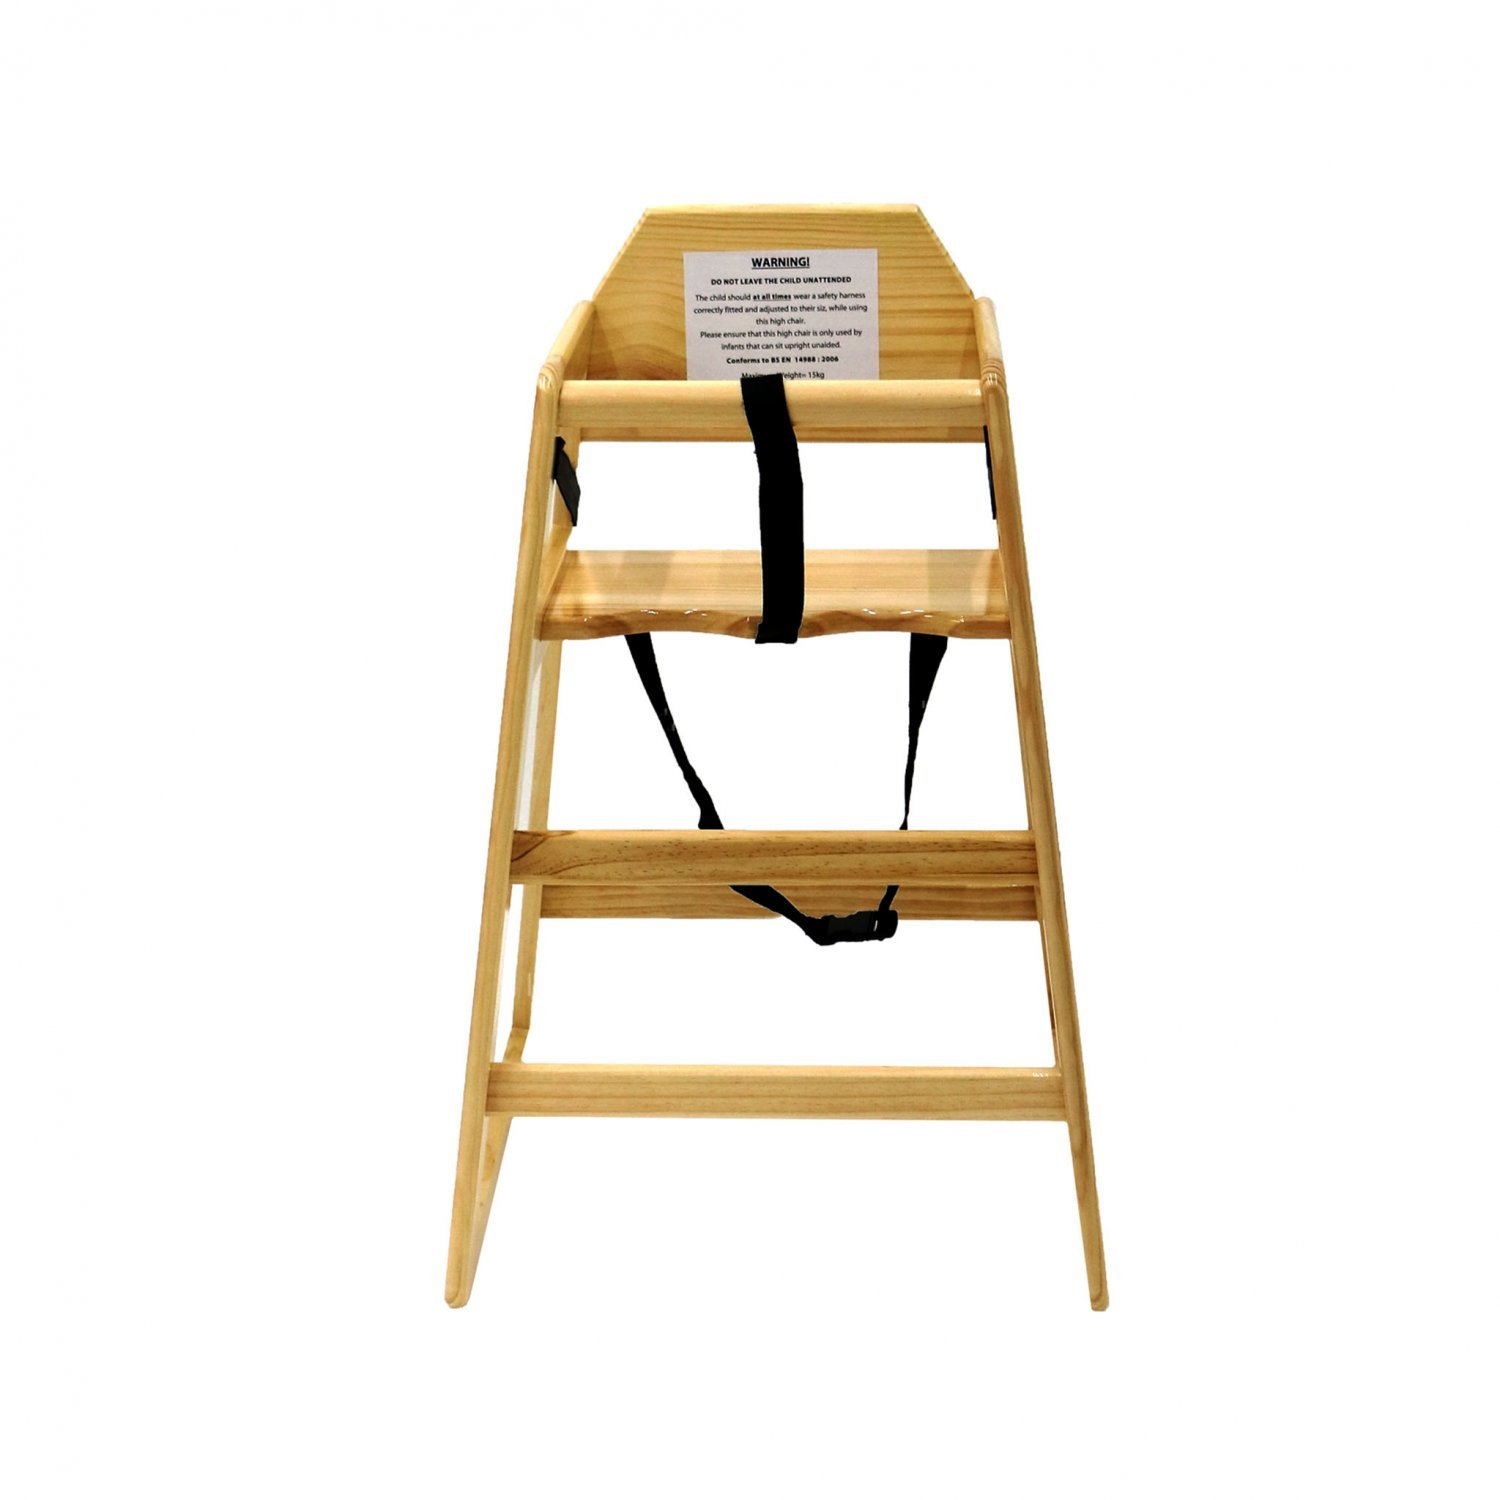 kids high chair inexpensive rocking chairs wooden natural 24 99 oypla